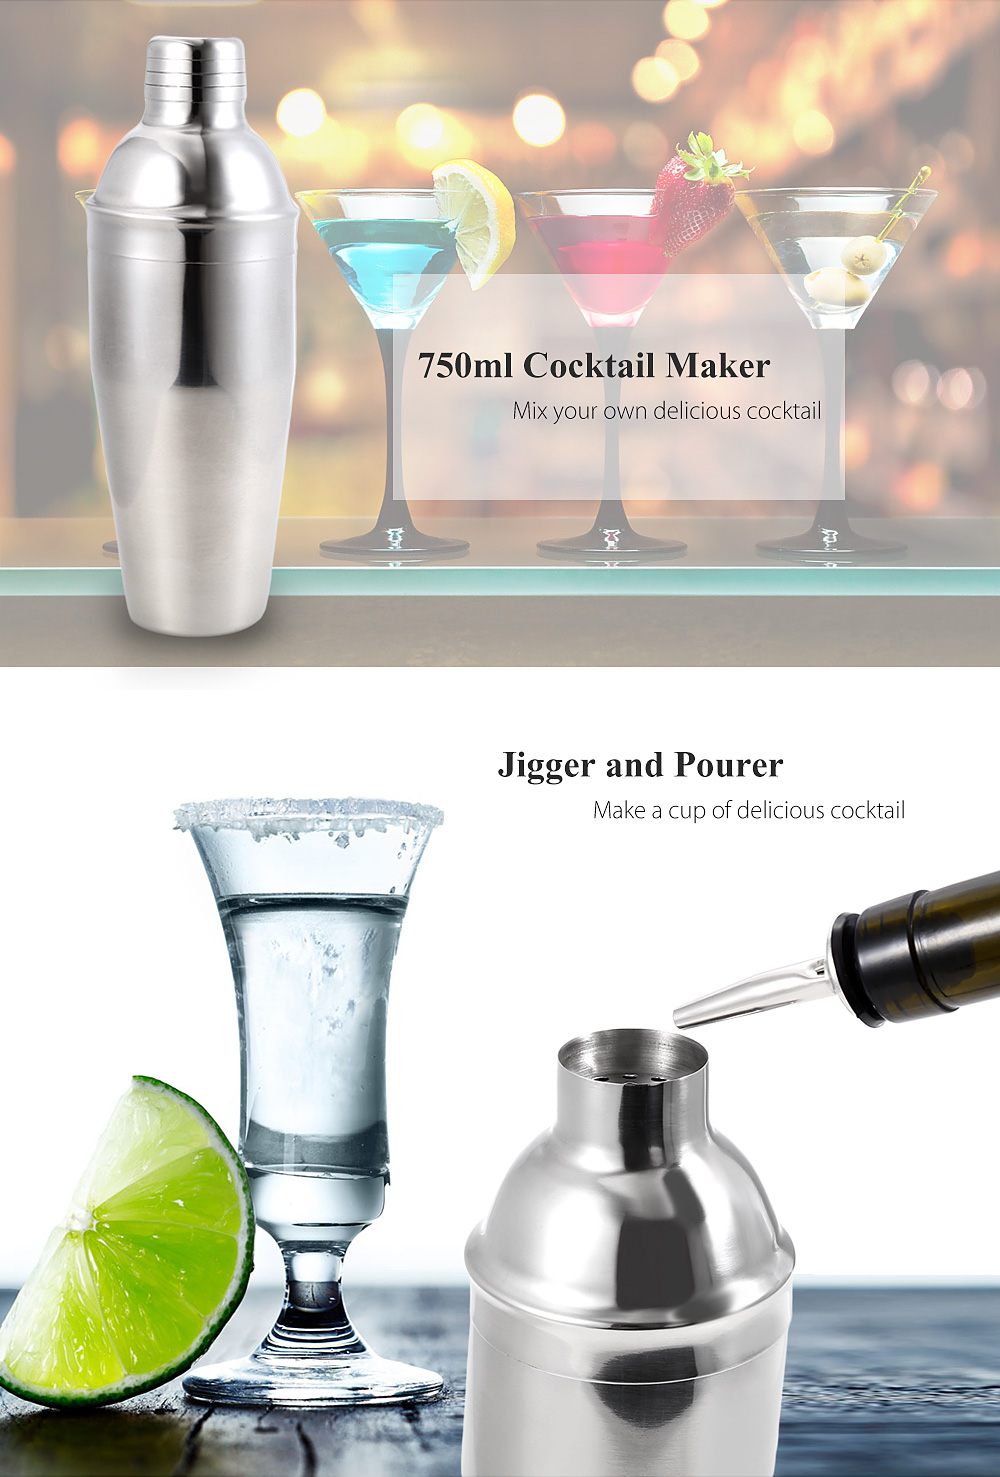 Professional Stainless Steel Cocktail Shaker Kit with Mixer Jigger Pourer